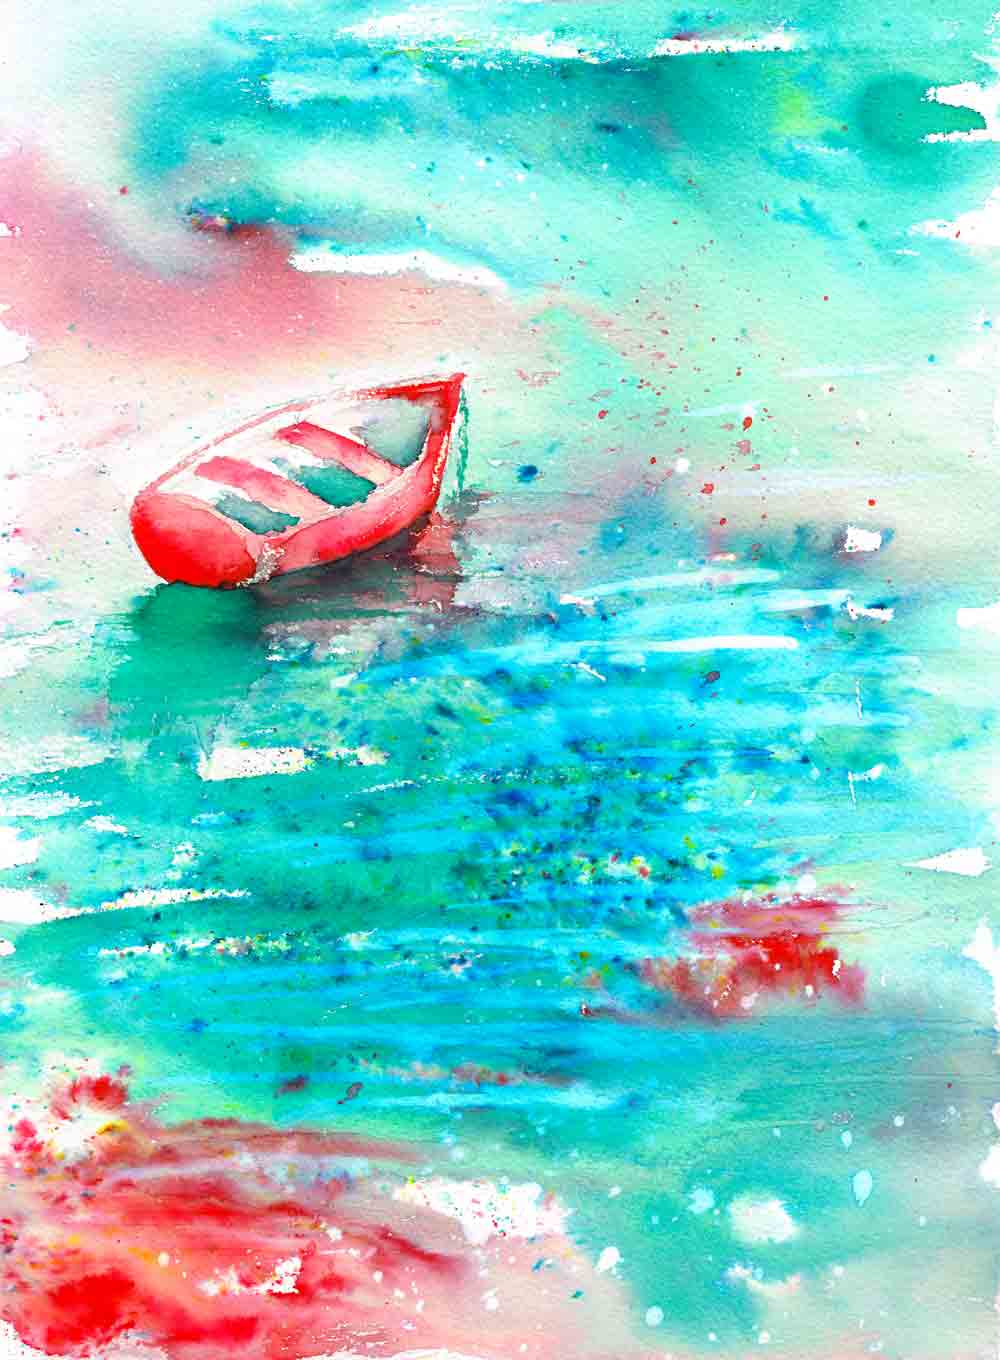 Messing-about-in-boats-no-1-Little-Red-Boat-kw.jpg